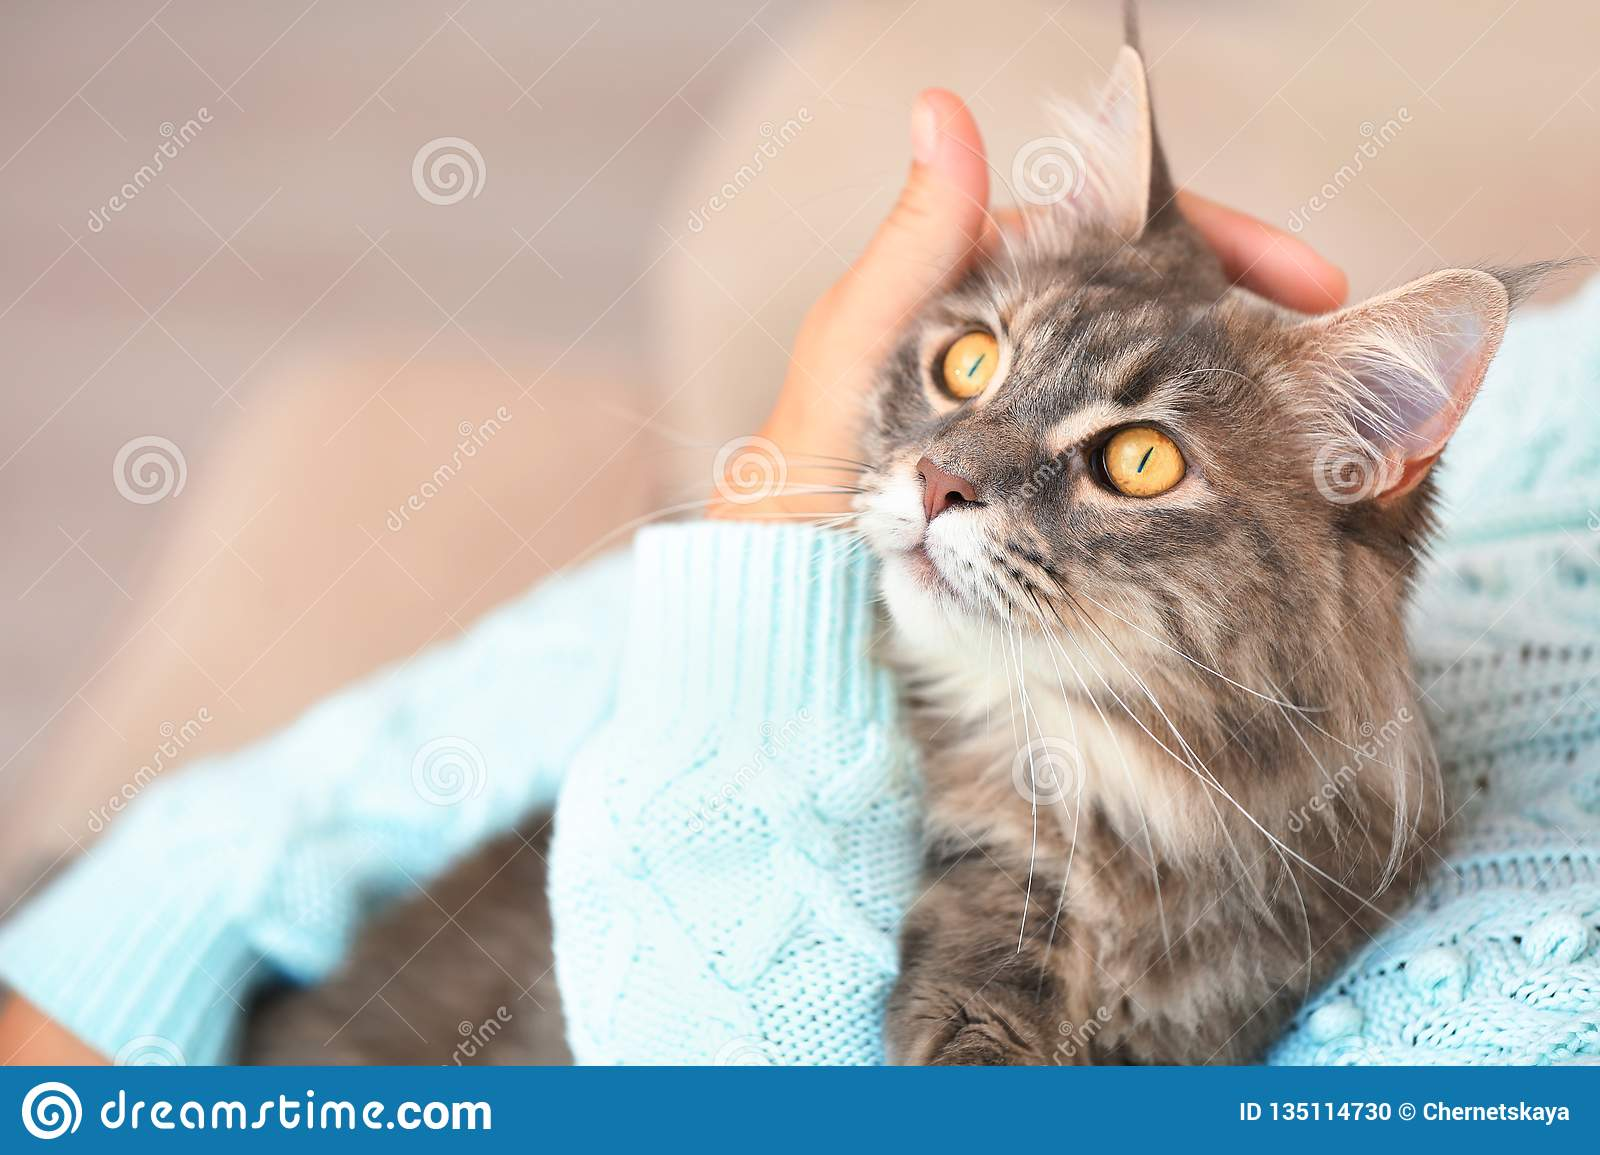 Woman with adorable Maine Coon cat at home, closeup.